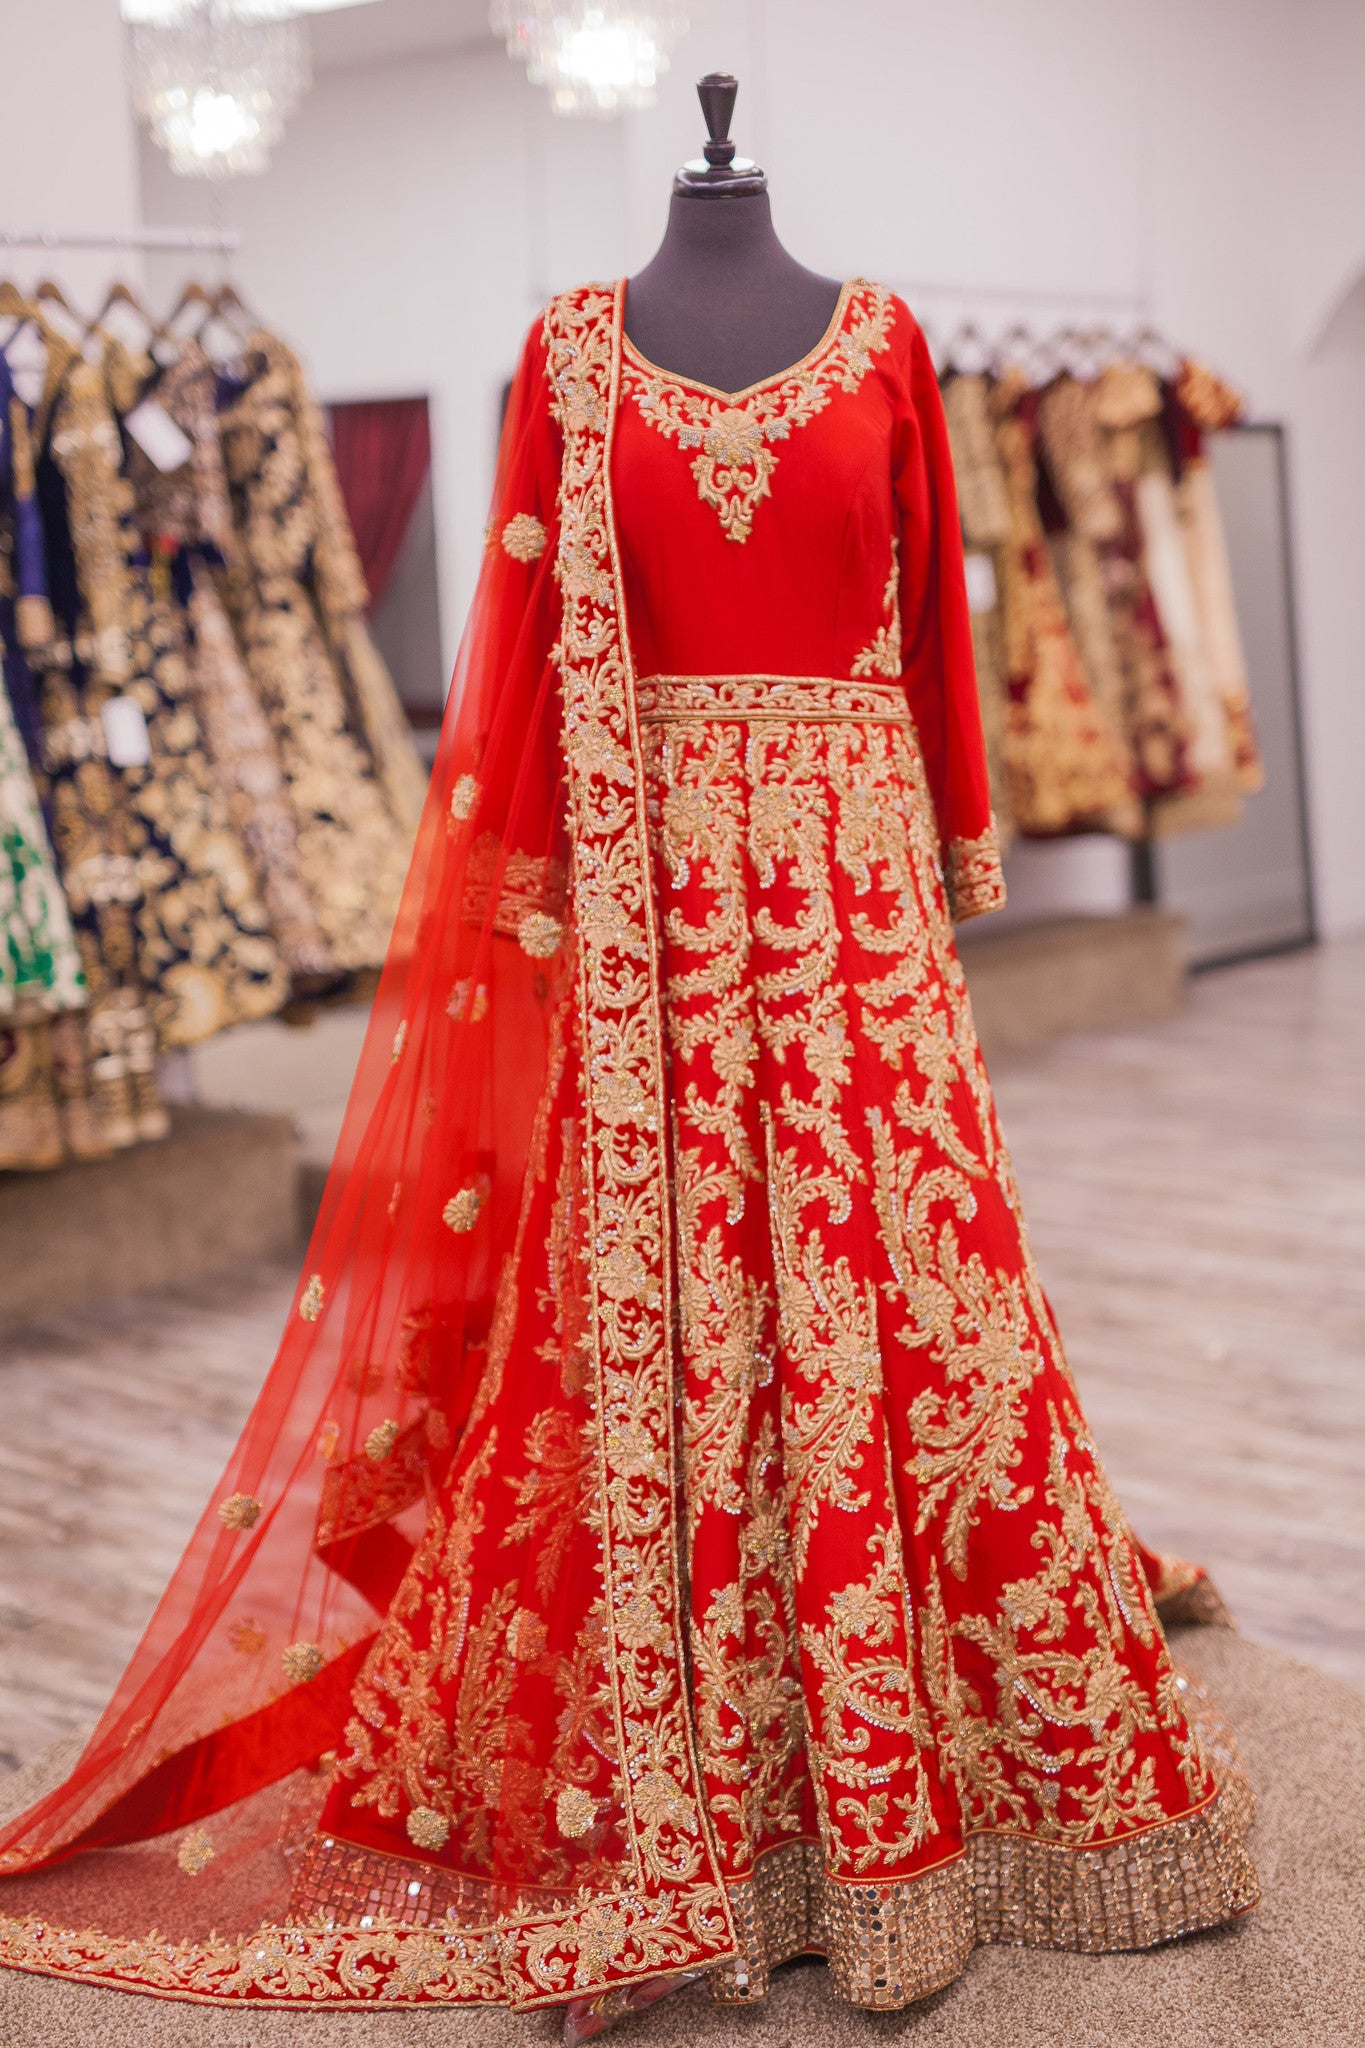 Red Bridal Anarkali with a Train